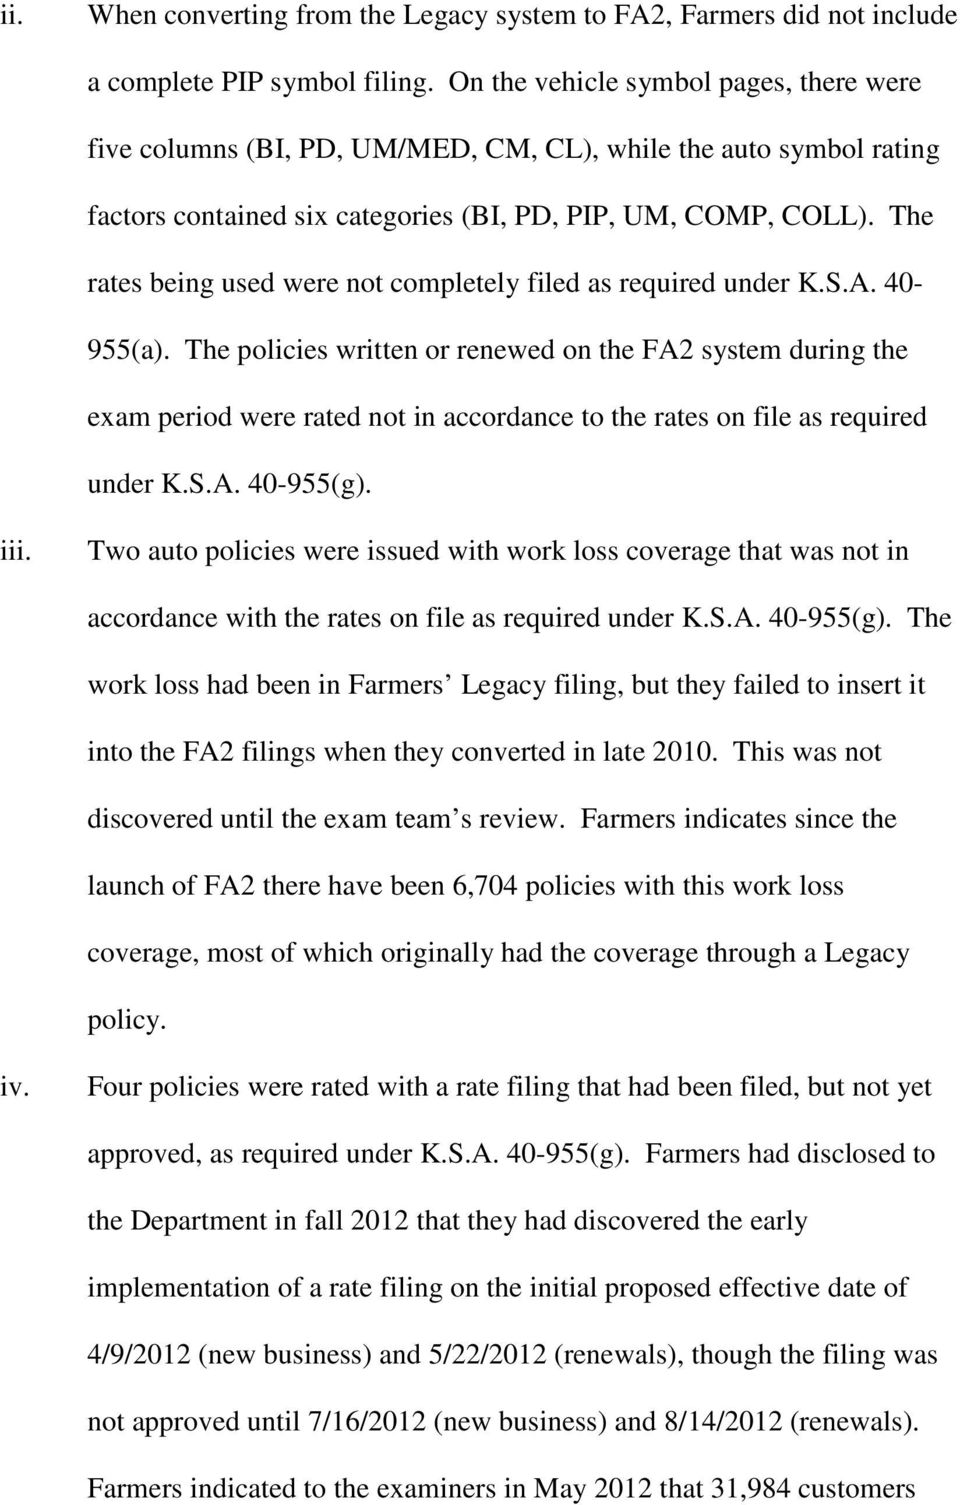 The rates being used were not completely filed as required under K.S.A. 40-955(a).